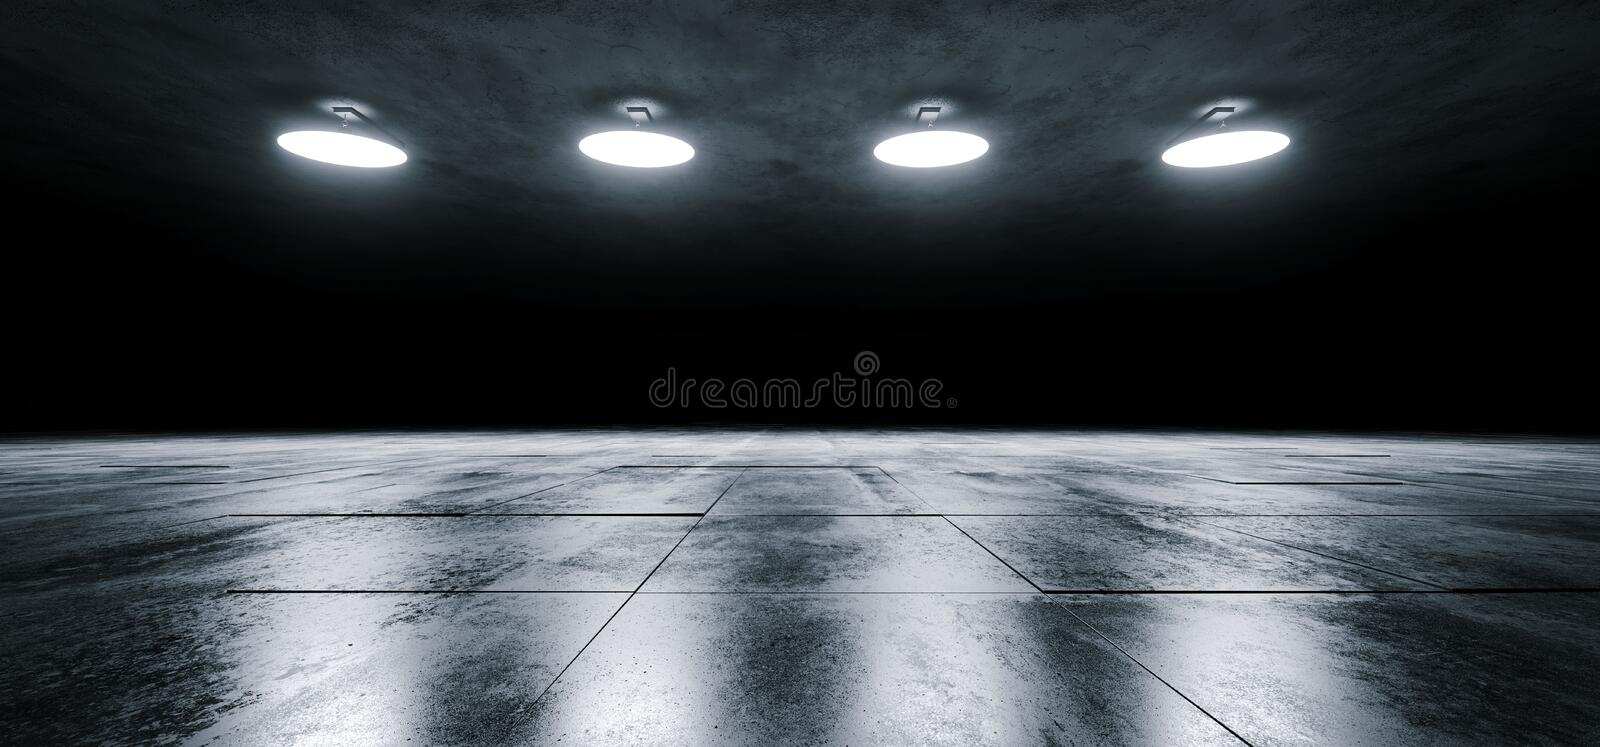 Modern Sci Fi Empty Stage Dome Ceiling Lights White Glowing On Dark Grunge Reflective Tiled Concrete Texture Floor Showroom Stage. 3D Rendering Illustration royalty free illustration